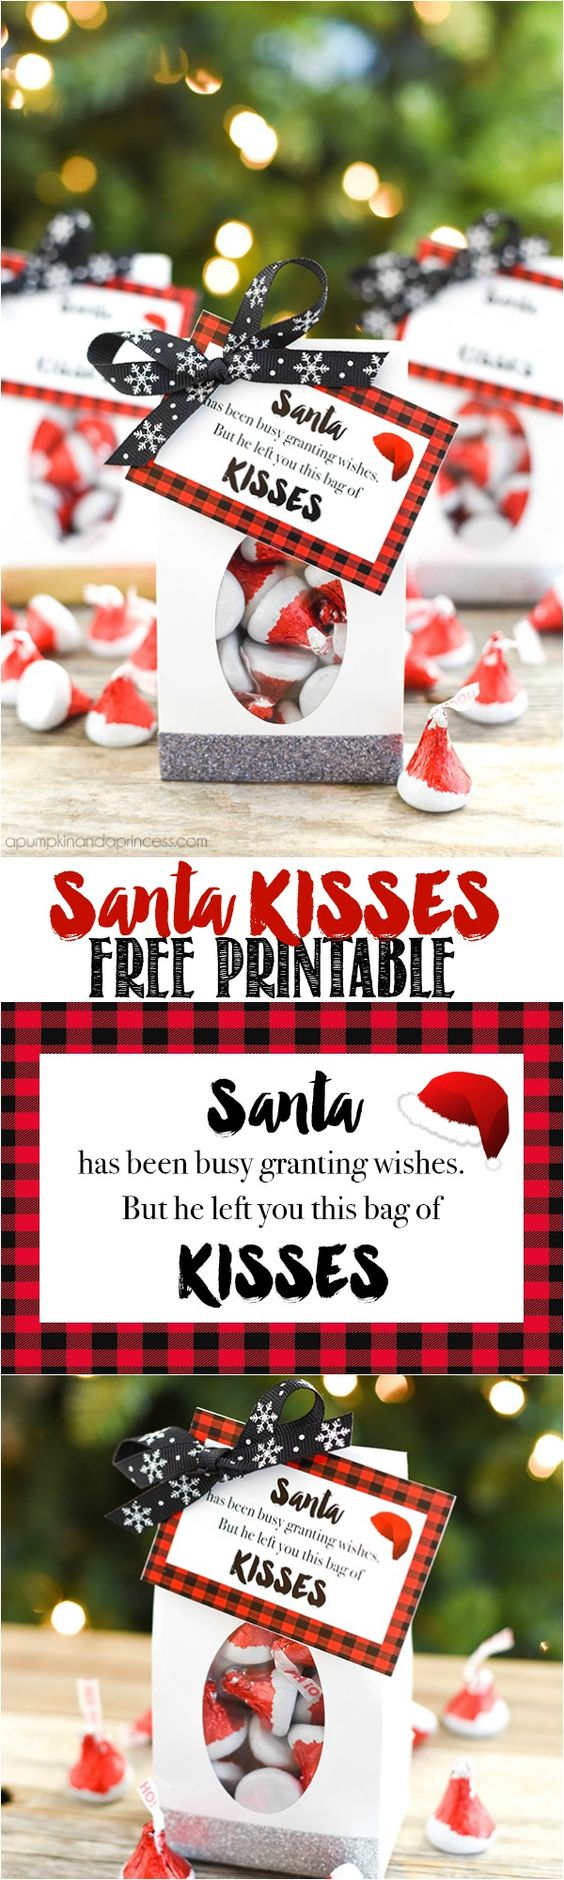 Santa KISSES Christmas treat bags with free printable gift tag MichaelsMakers A Pumpkin And A Princess